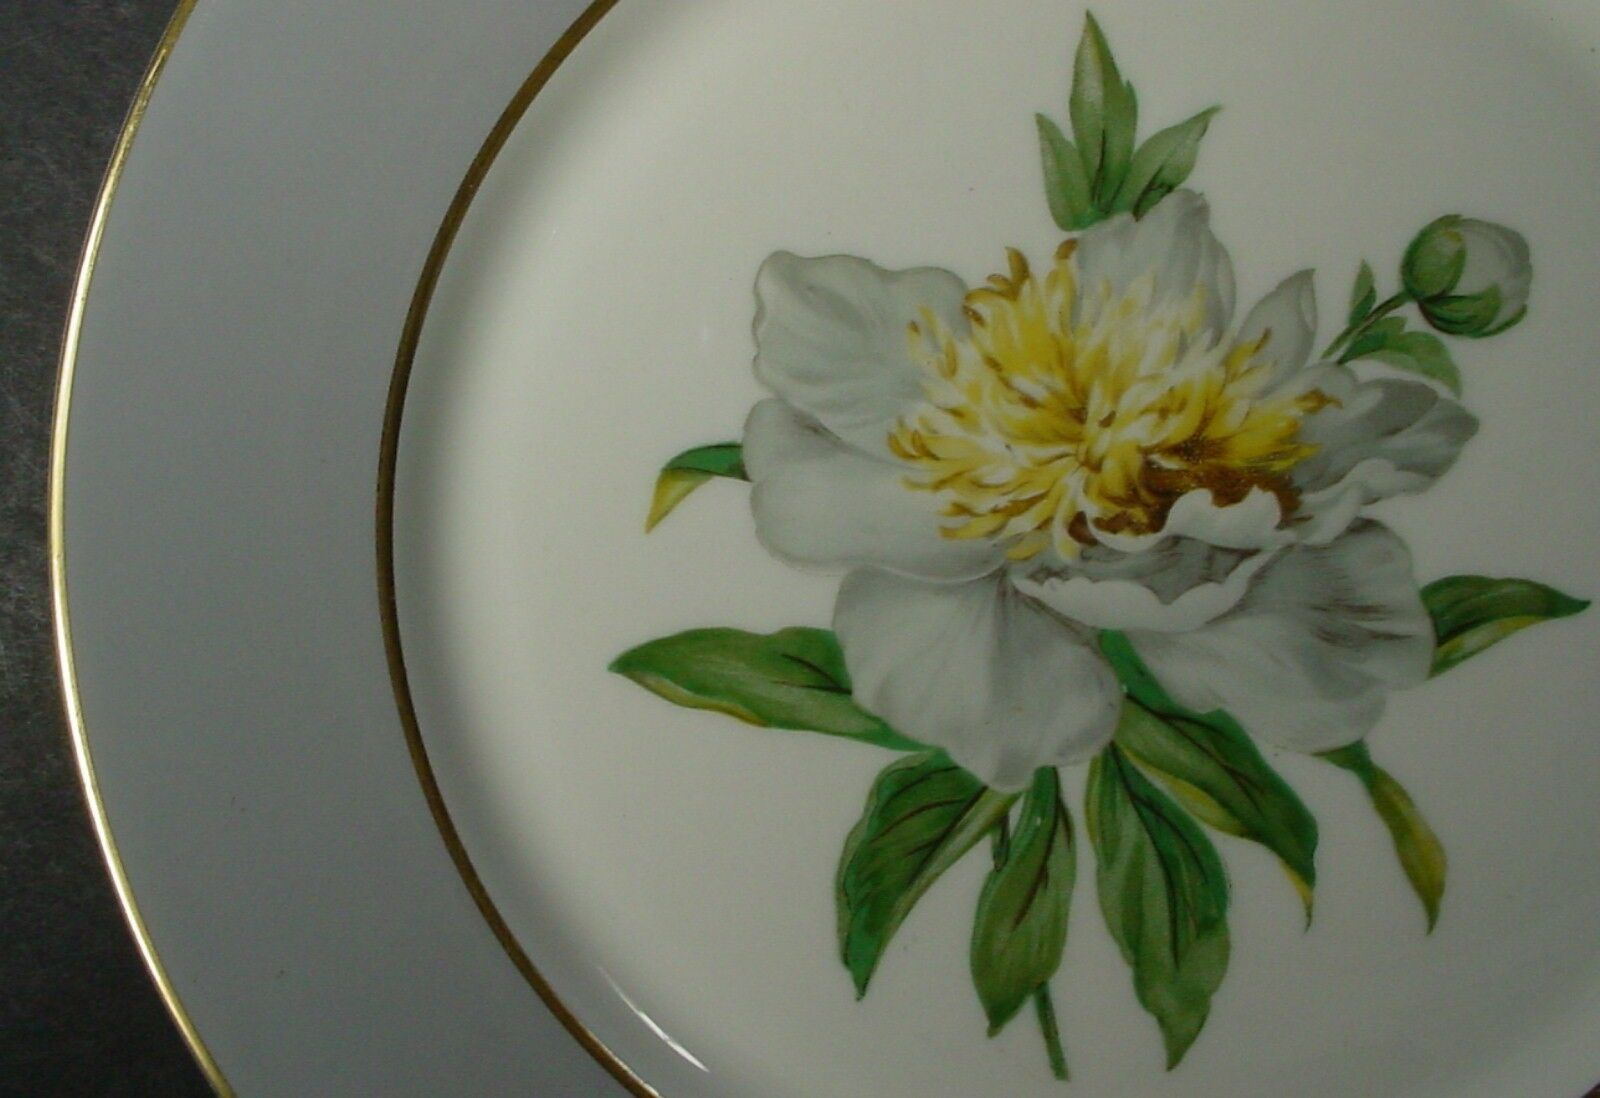 Купить Princess Golden Peony - PRINCESS china GOLDEN PEONY pattern Set of 2 Dinner Plates - 10-1/4